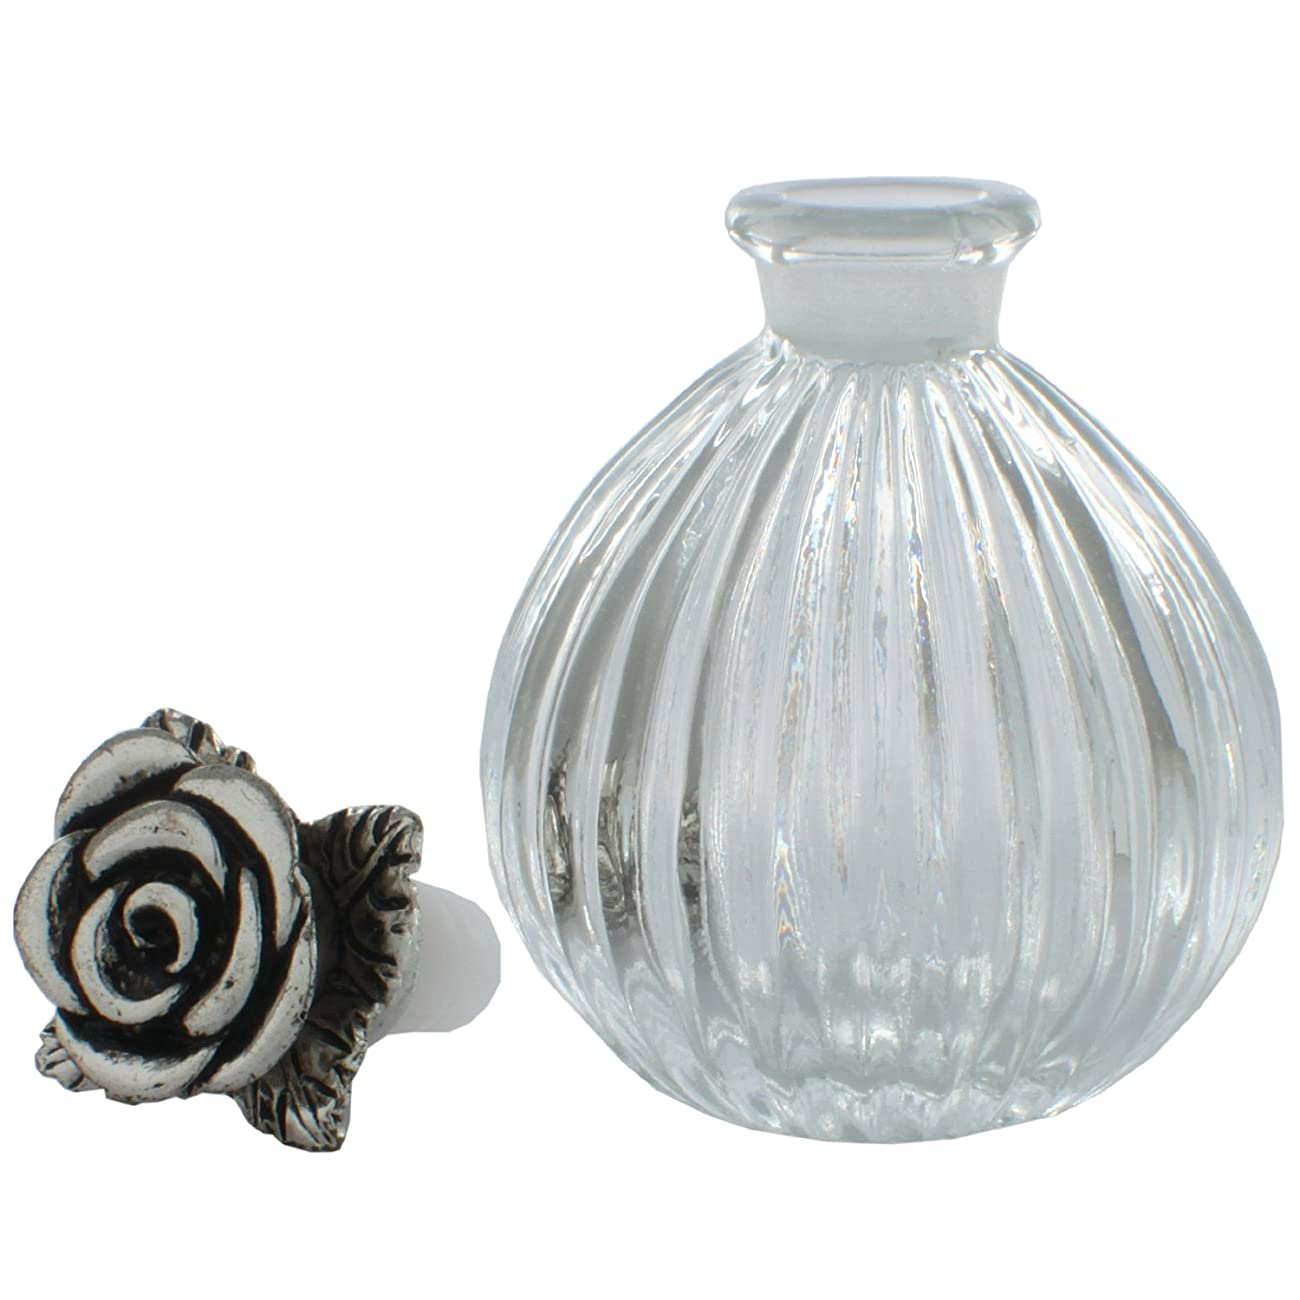 Antiques Glass Perfume Bottles Empty Refillable 6ML Silver Plated Rose 1